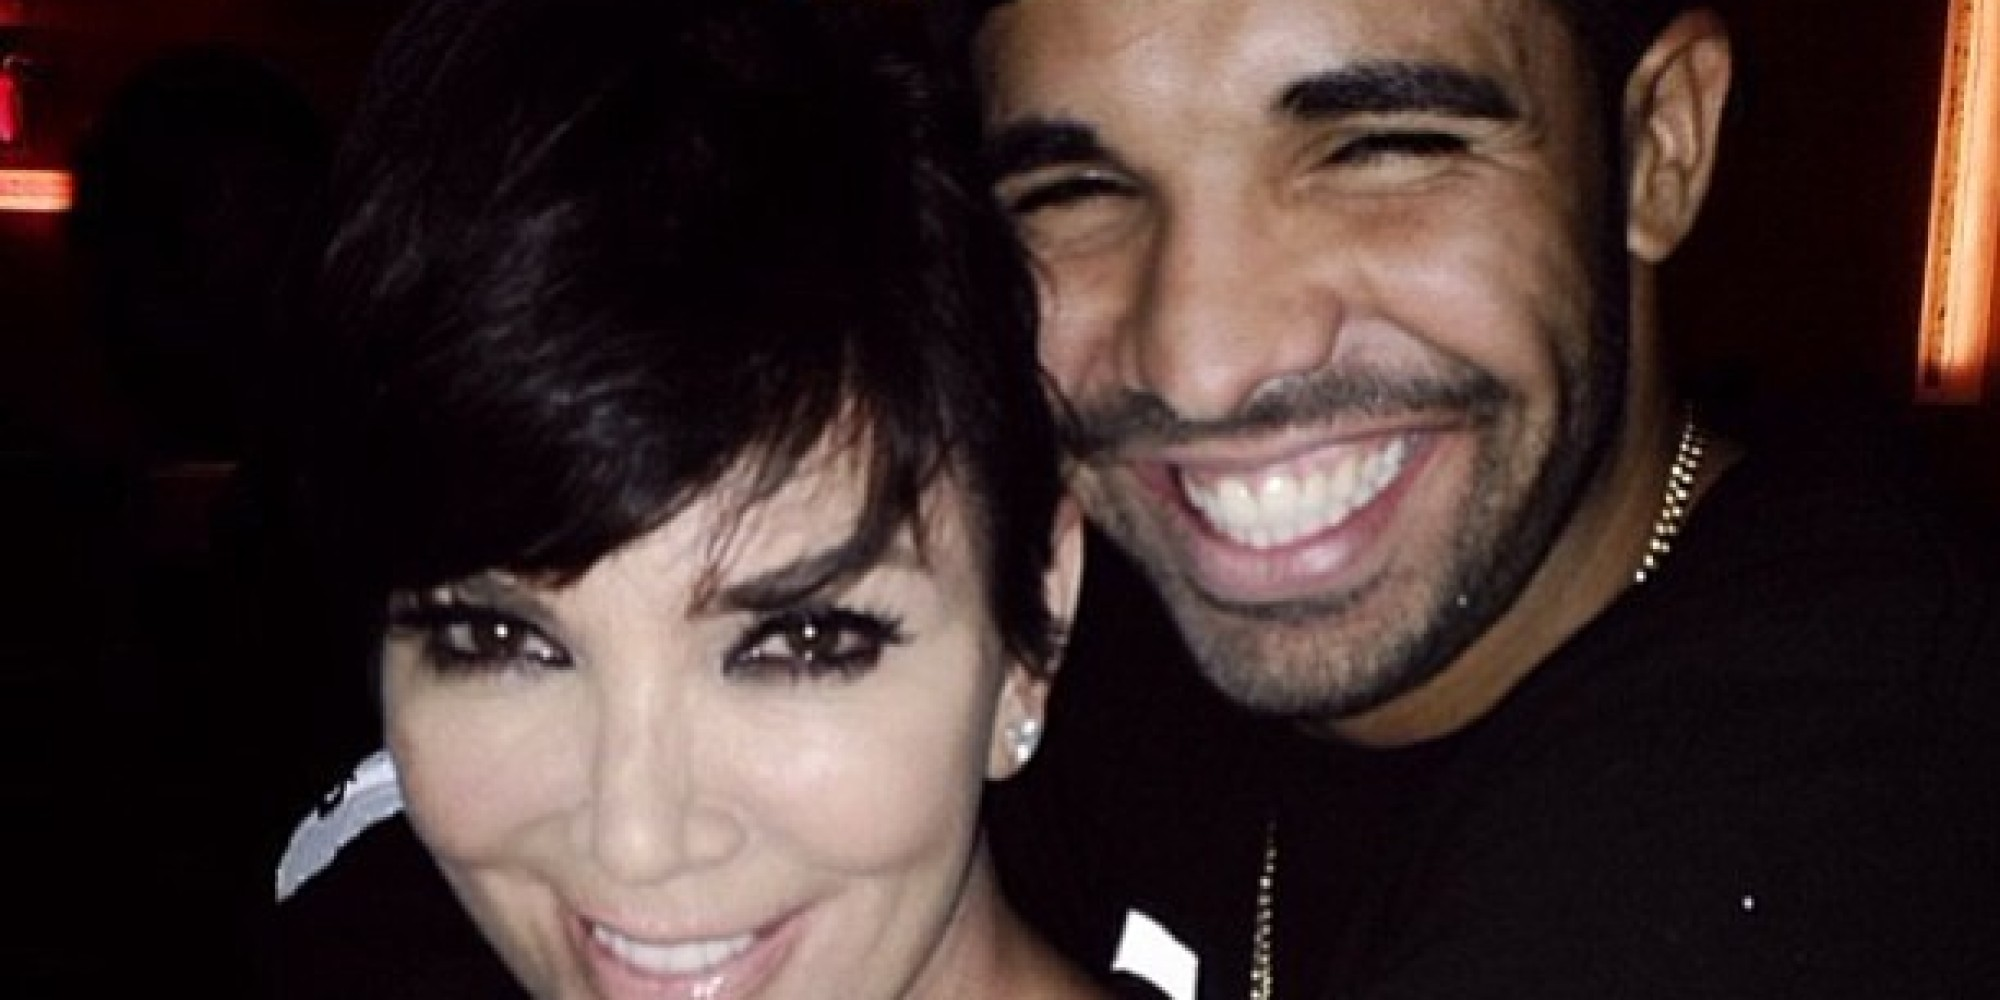 drake dating kris jenner 1 of 23 funniest drake/taylor swift jokesthere are rumors swirling around the internet that drake and taylor swift are an item thankfully, those rumors have long been debunked.